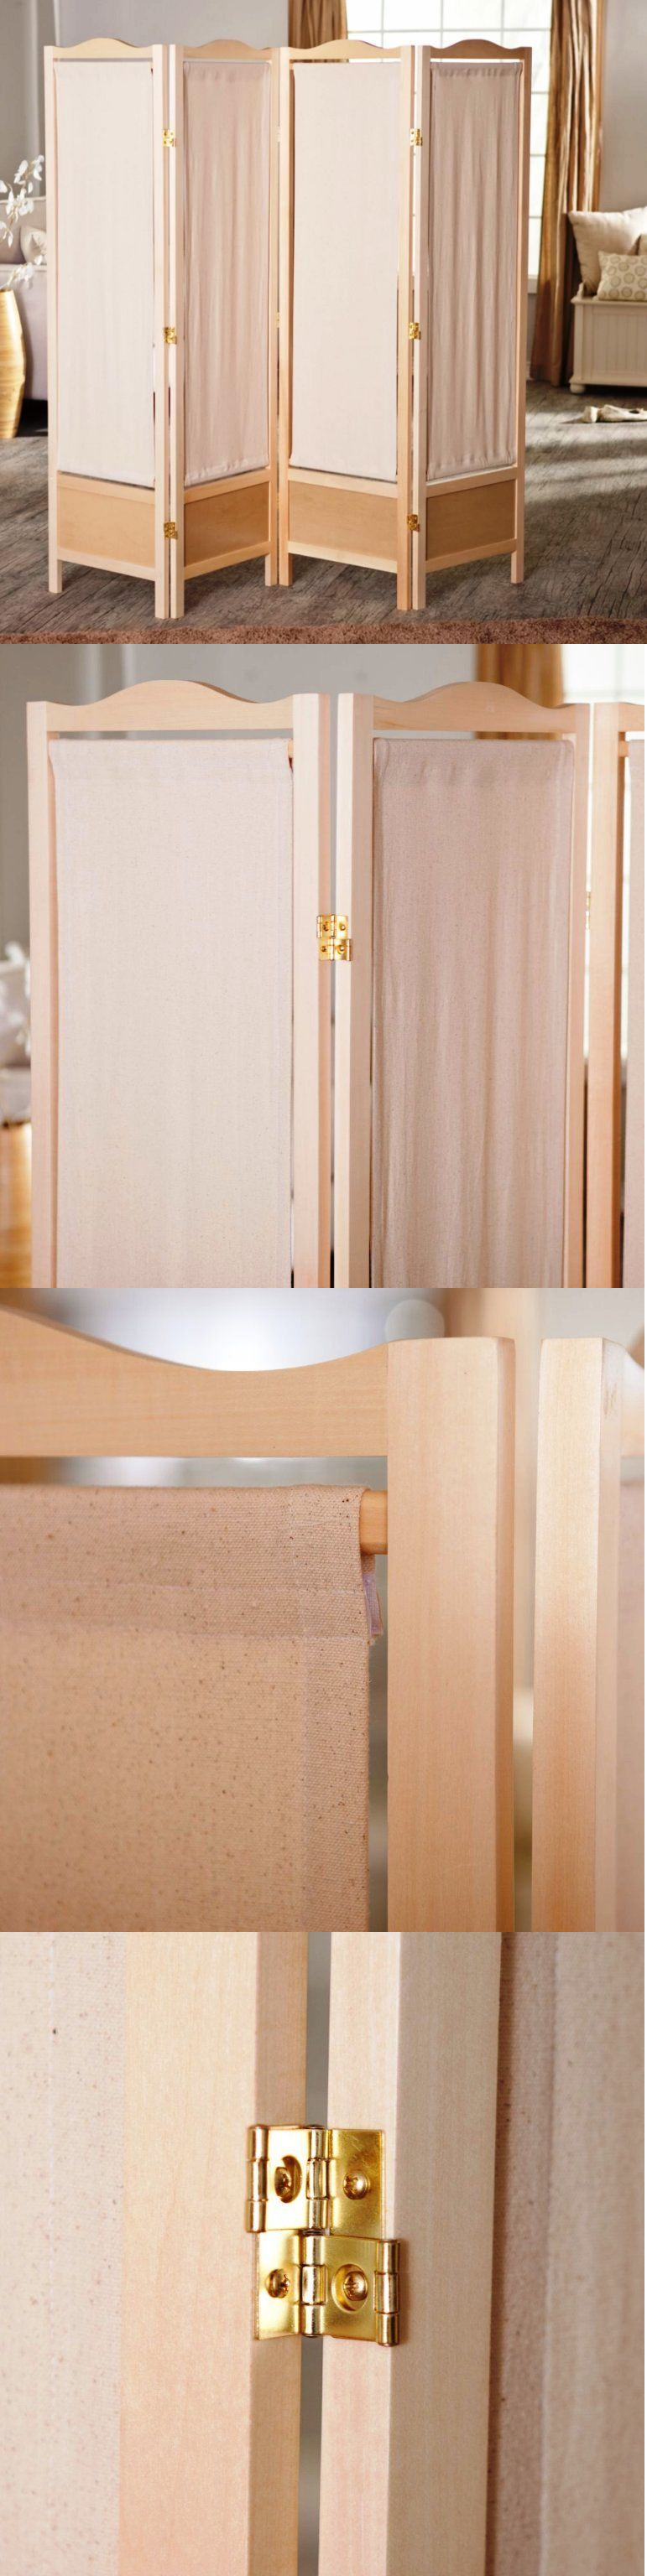 Screens and room dividers panel room divider modern free